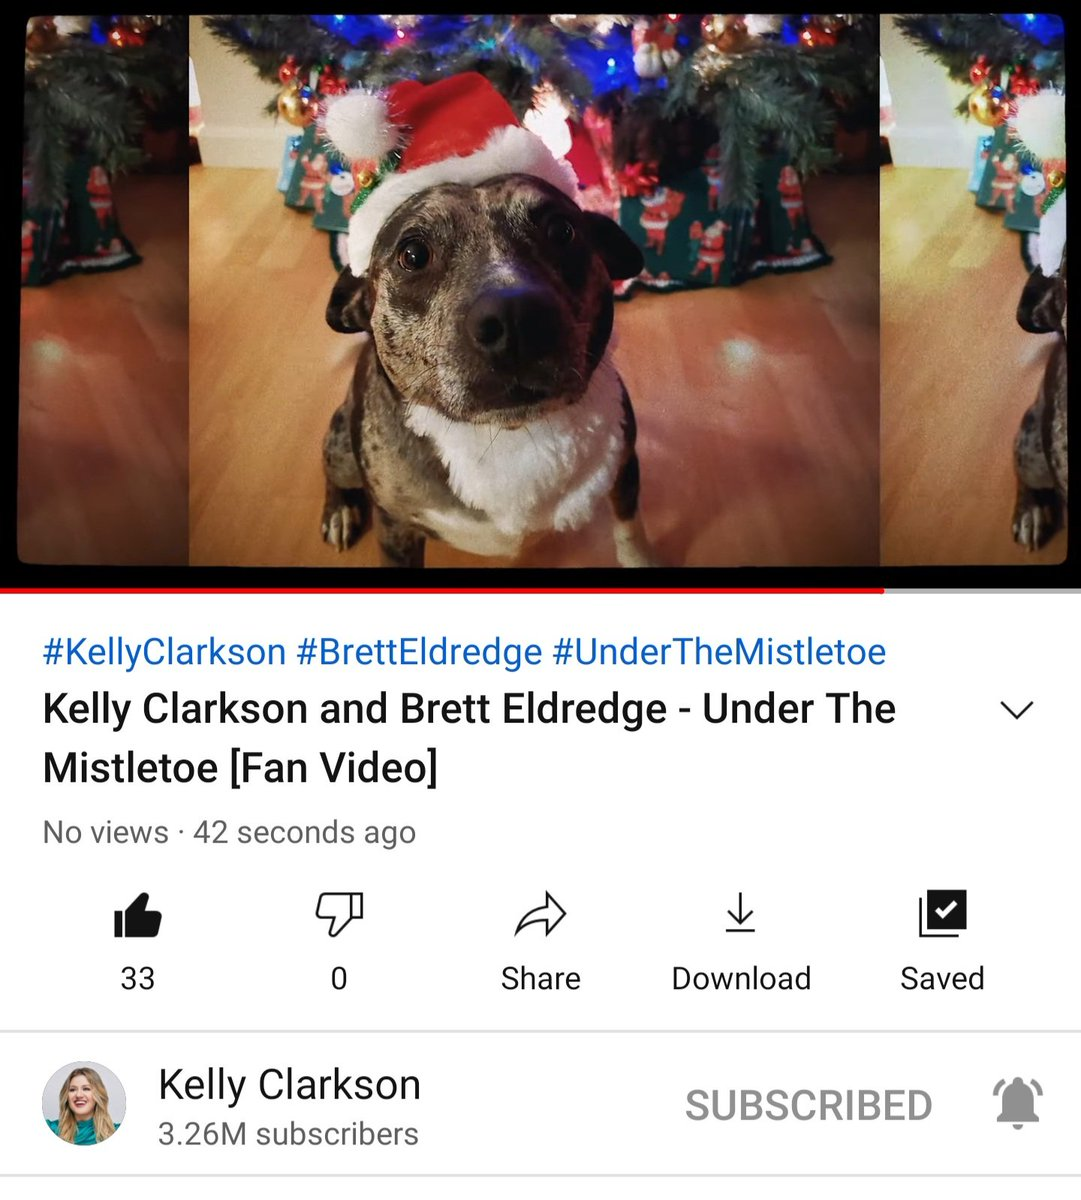 @kellyclarkson @amazonmusic My rescue pup Blanche made it into the fan video!  What a special moment!  Thank you and Merry Christmas @kellyclarkson !!!!  🎄☃️🤶🎅🎄